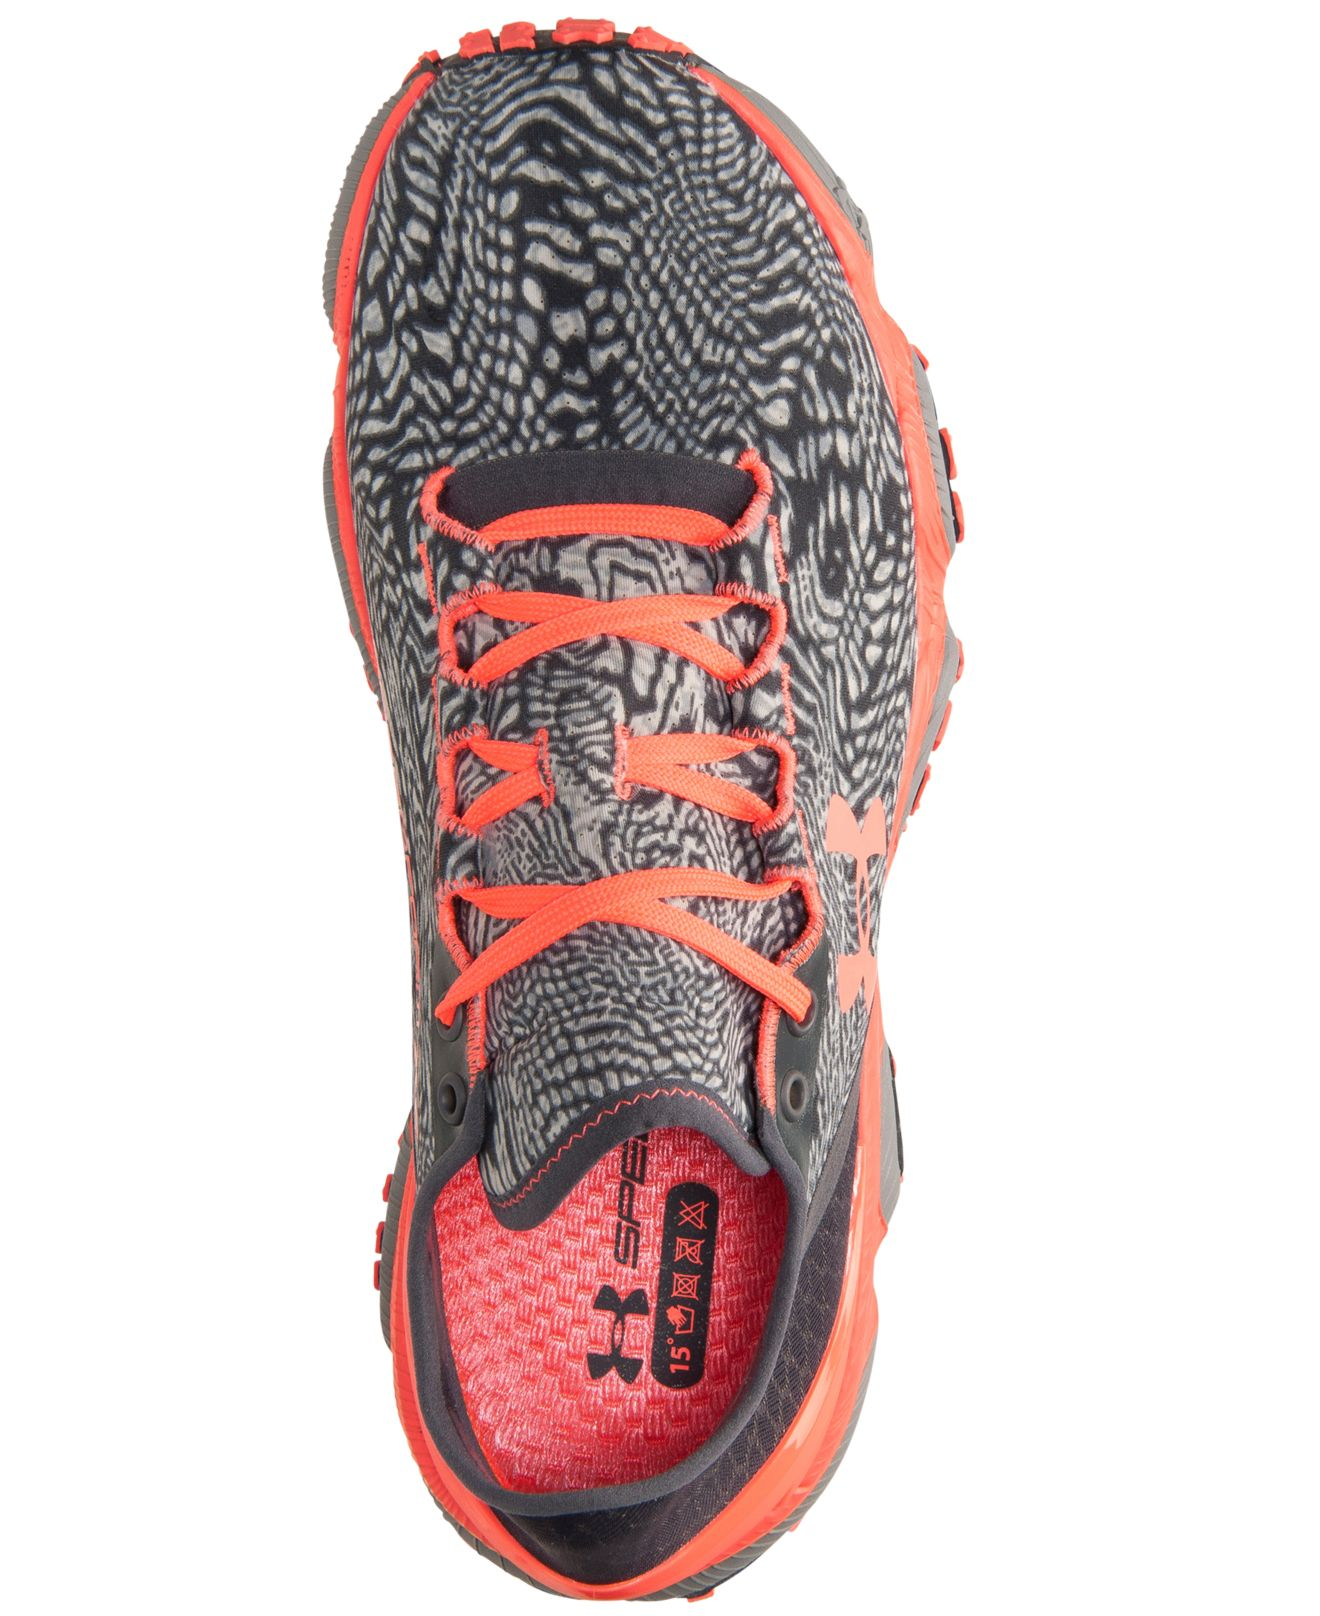 new style 7cc16 2f45b Under Armour Women S Speedform Xc Trail Running Sneakers From Finish ...